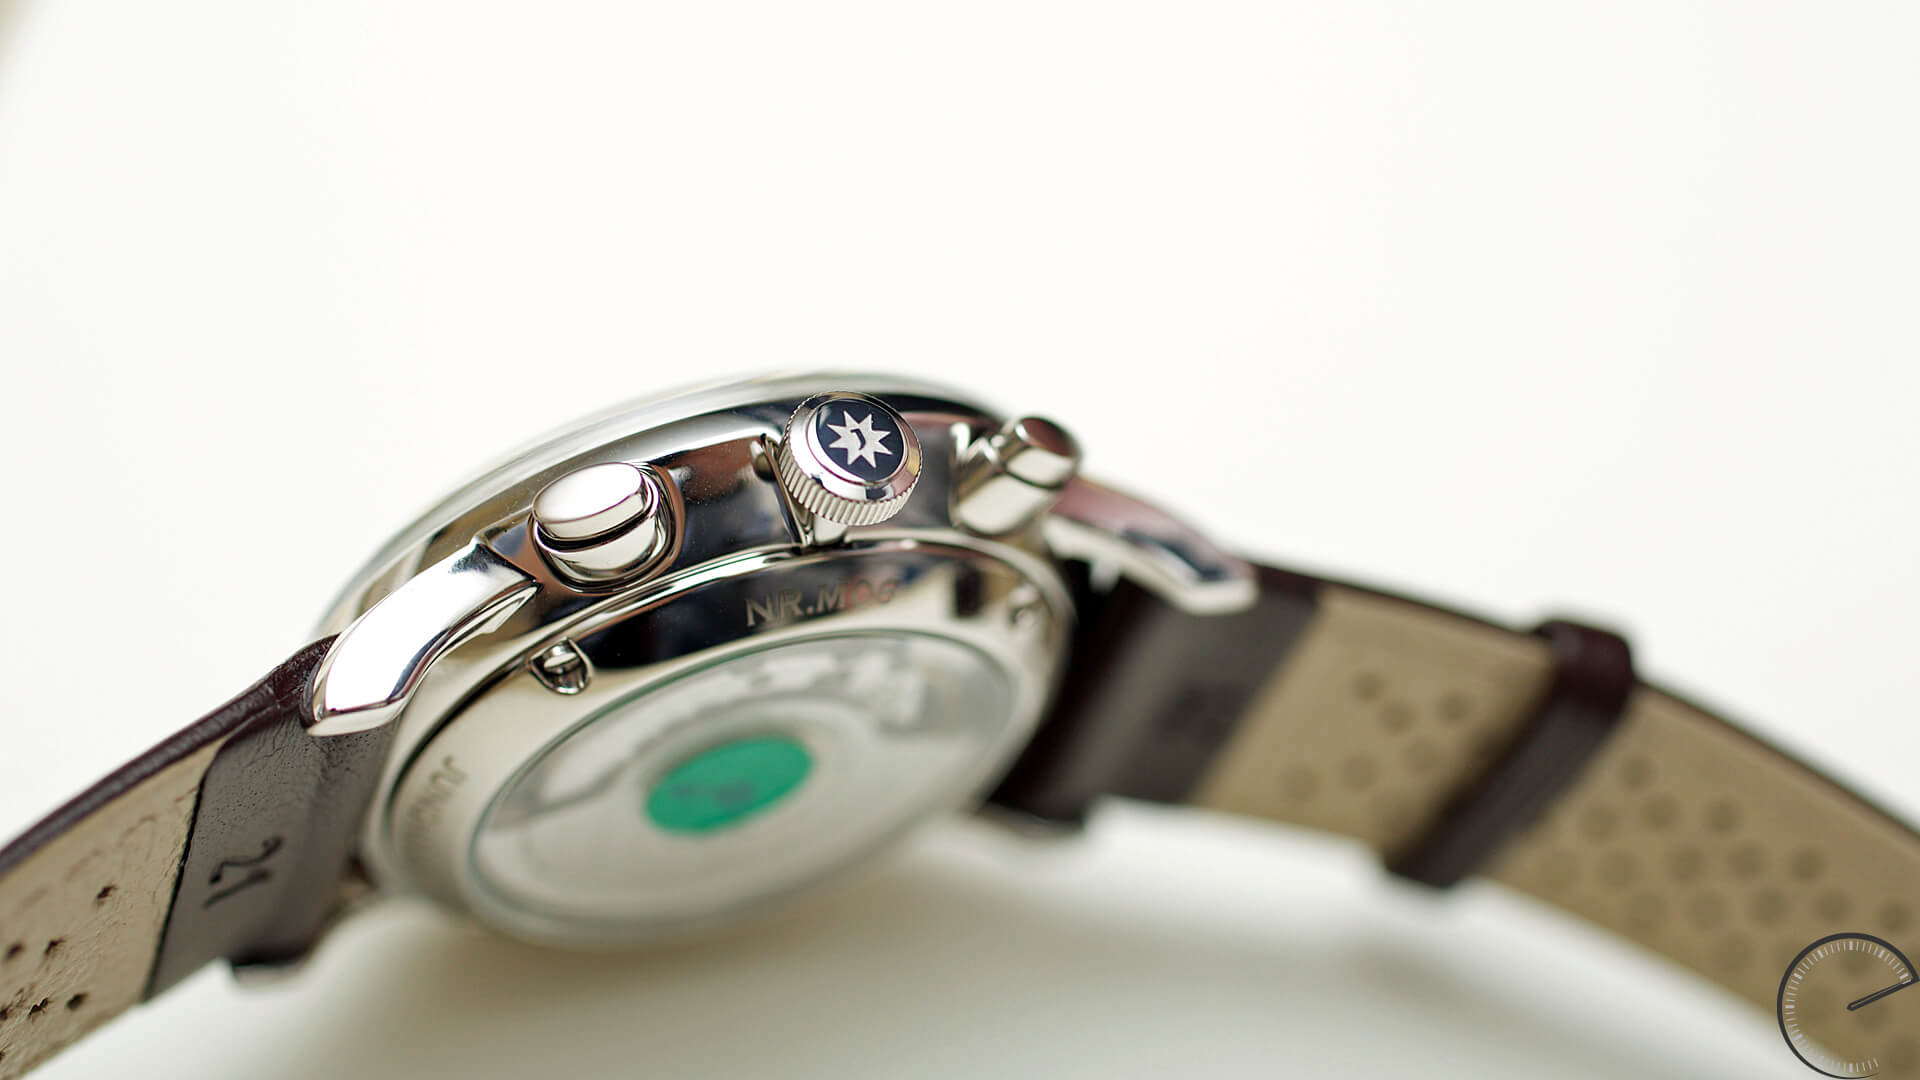 Junghans_Meister_Driver_Chronoscope_caseband - ESCAPEMENT magazine - watch blog by Angus Davies